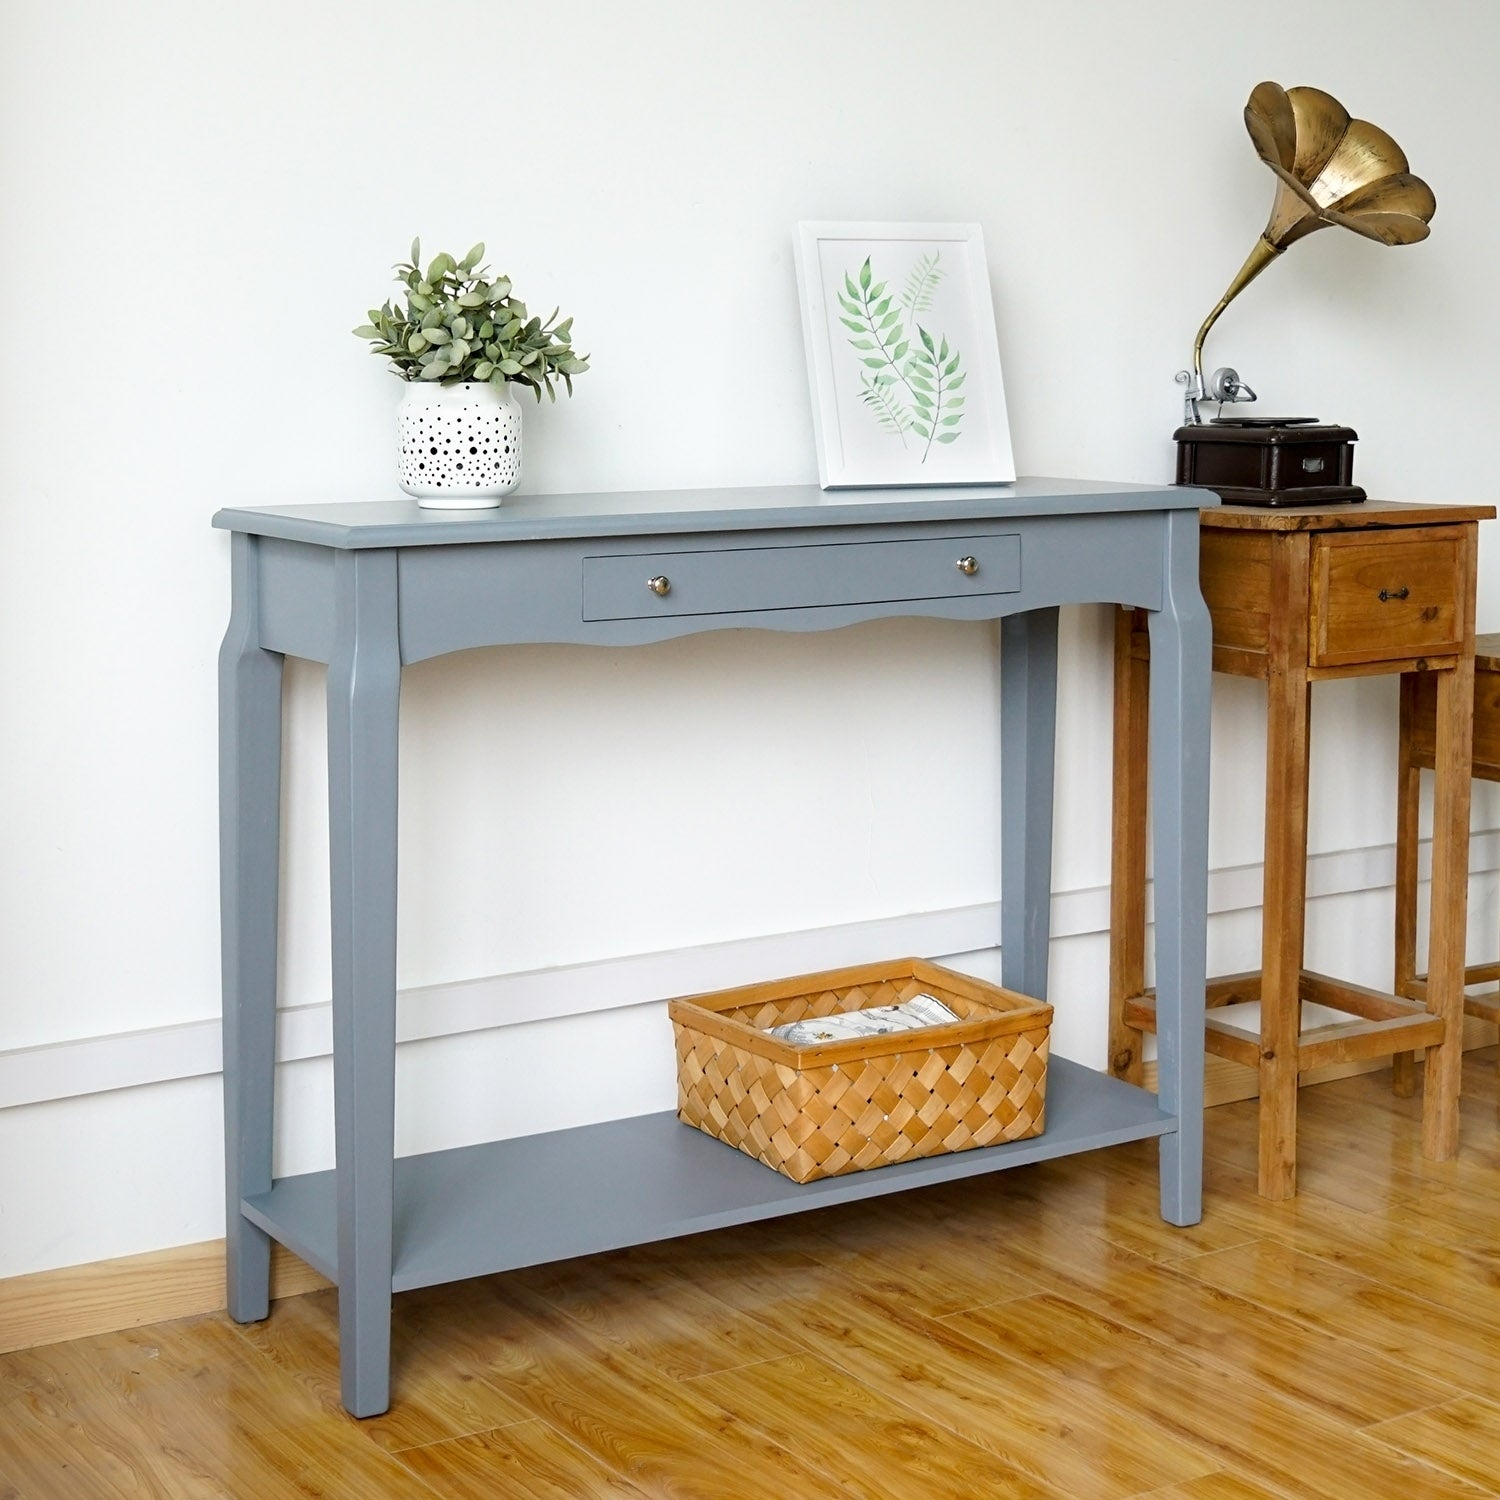 Kinbor Console Table Entryway Hall Sofa Side With Drawer And Shelf Heritage End